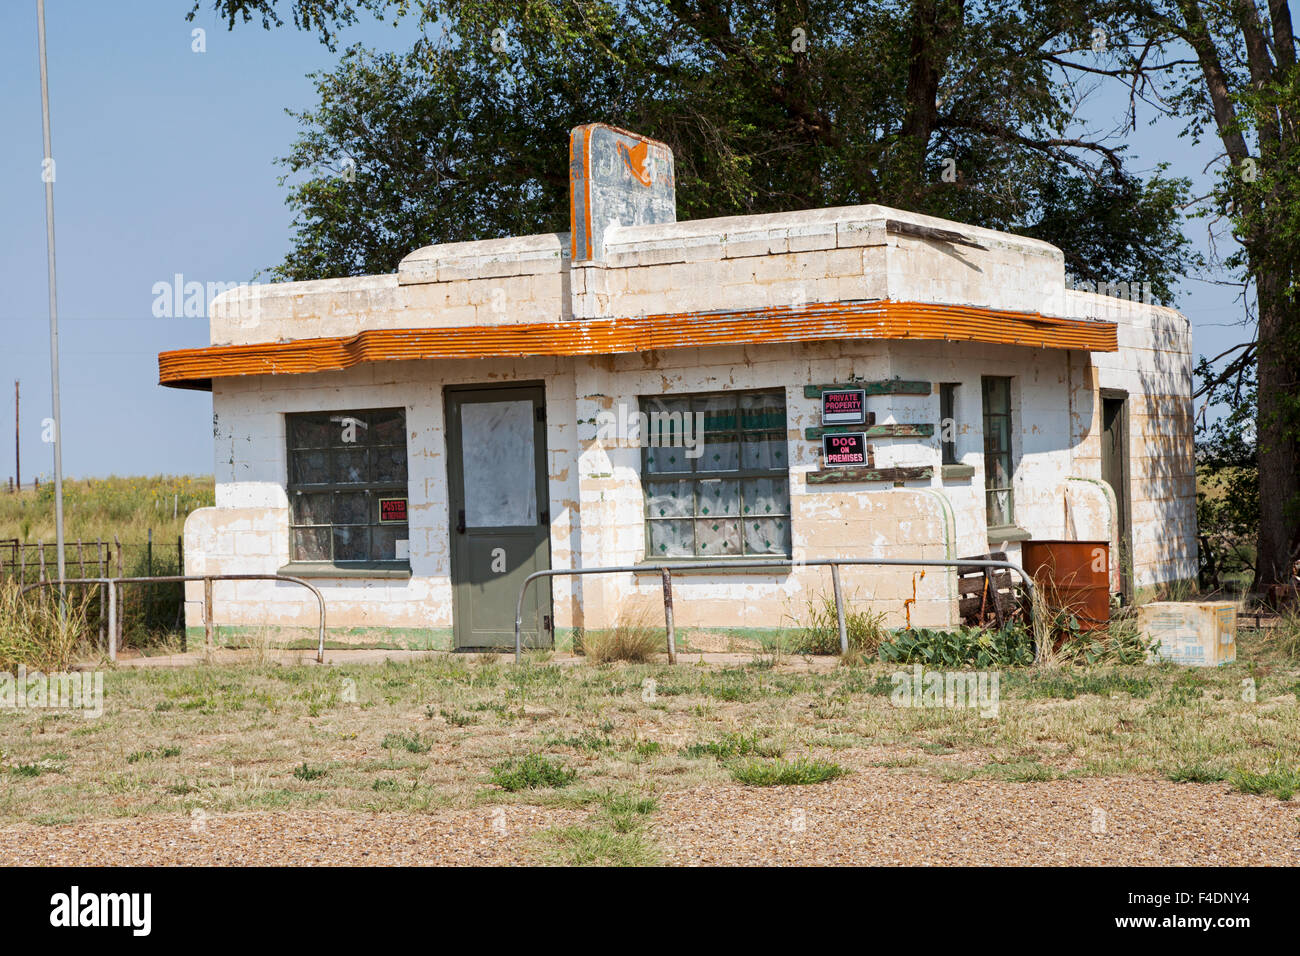 The Art Moderne-style  Little Juarez Cafe along Route 66 in Glenrio, Texas. was built in 1952 and remained opened Stock Photo